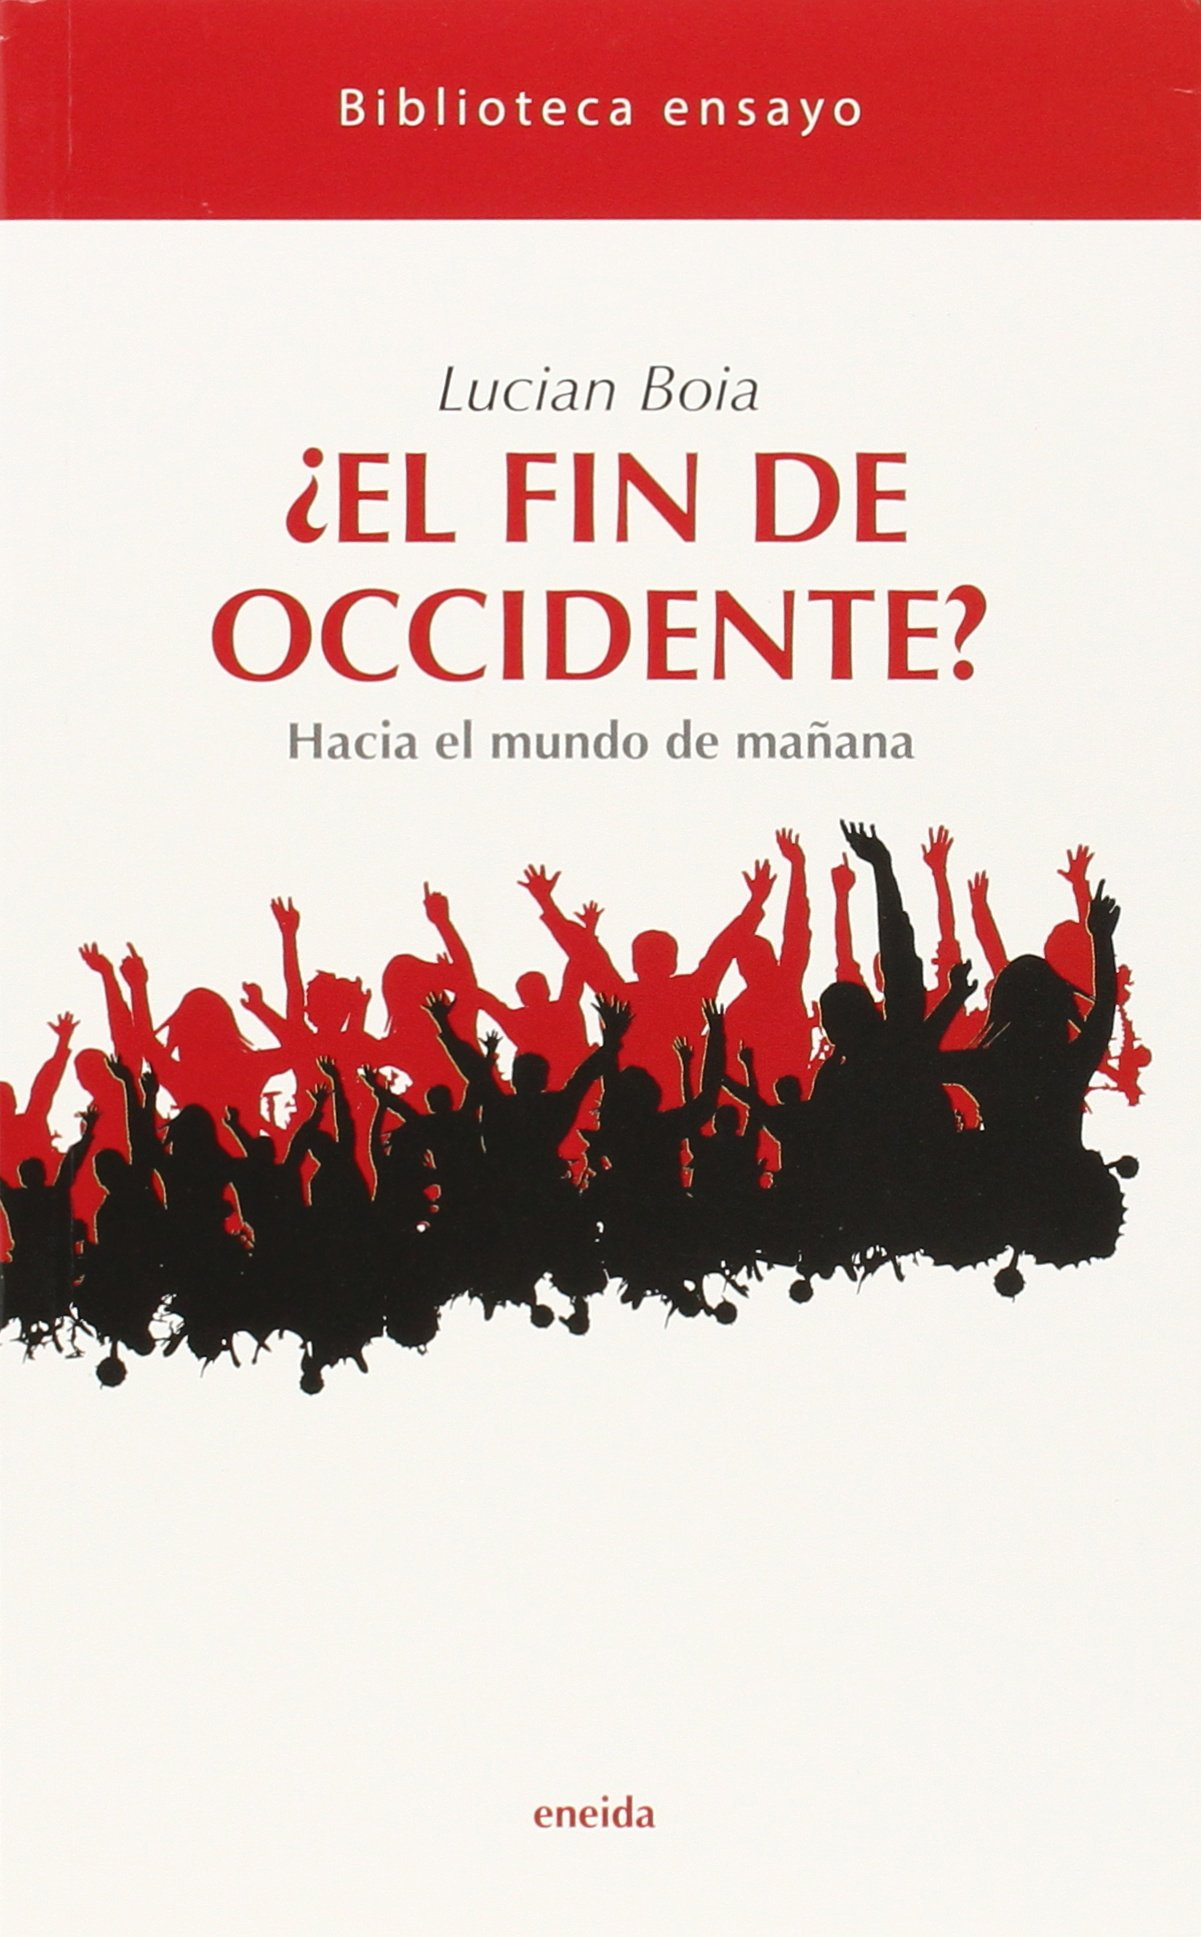 fin de occidente, El